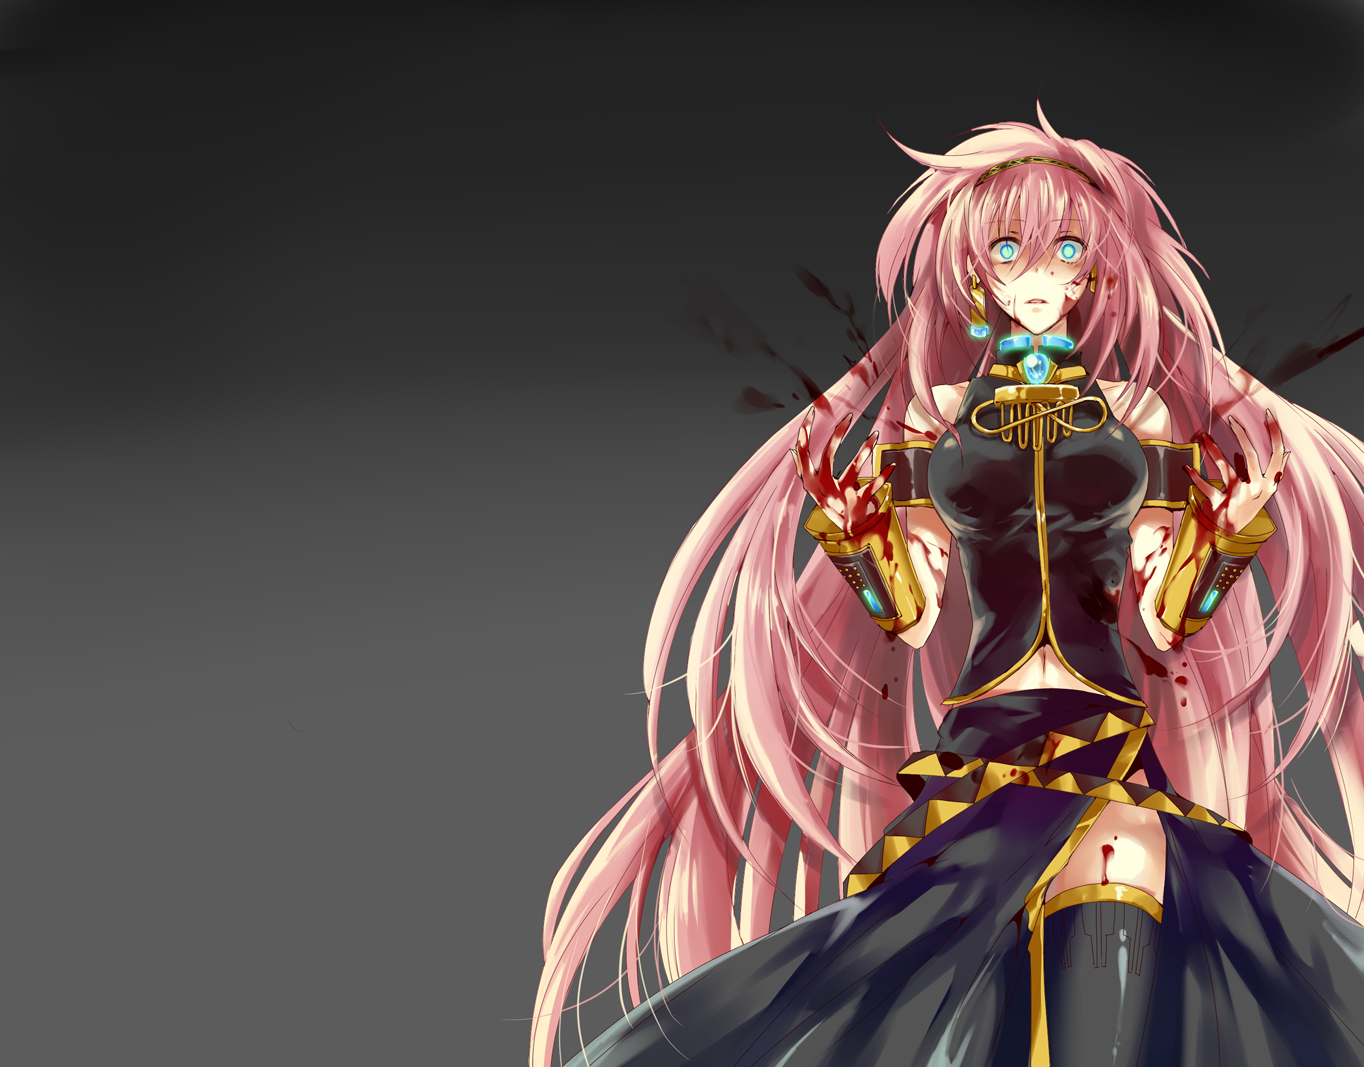 blood blue_eyes megurine_luka pink_hair vocaloid